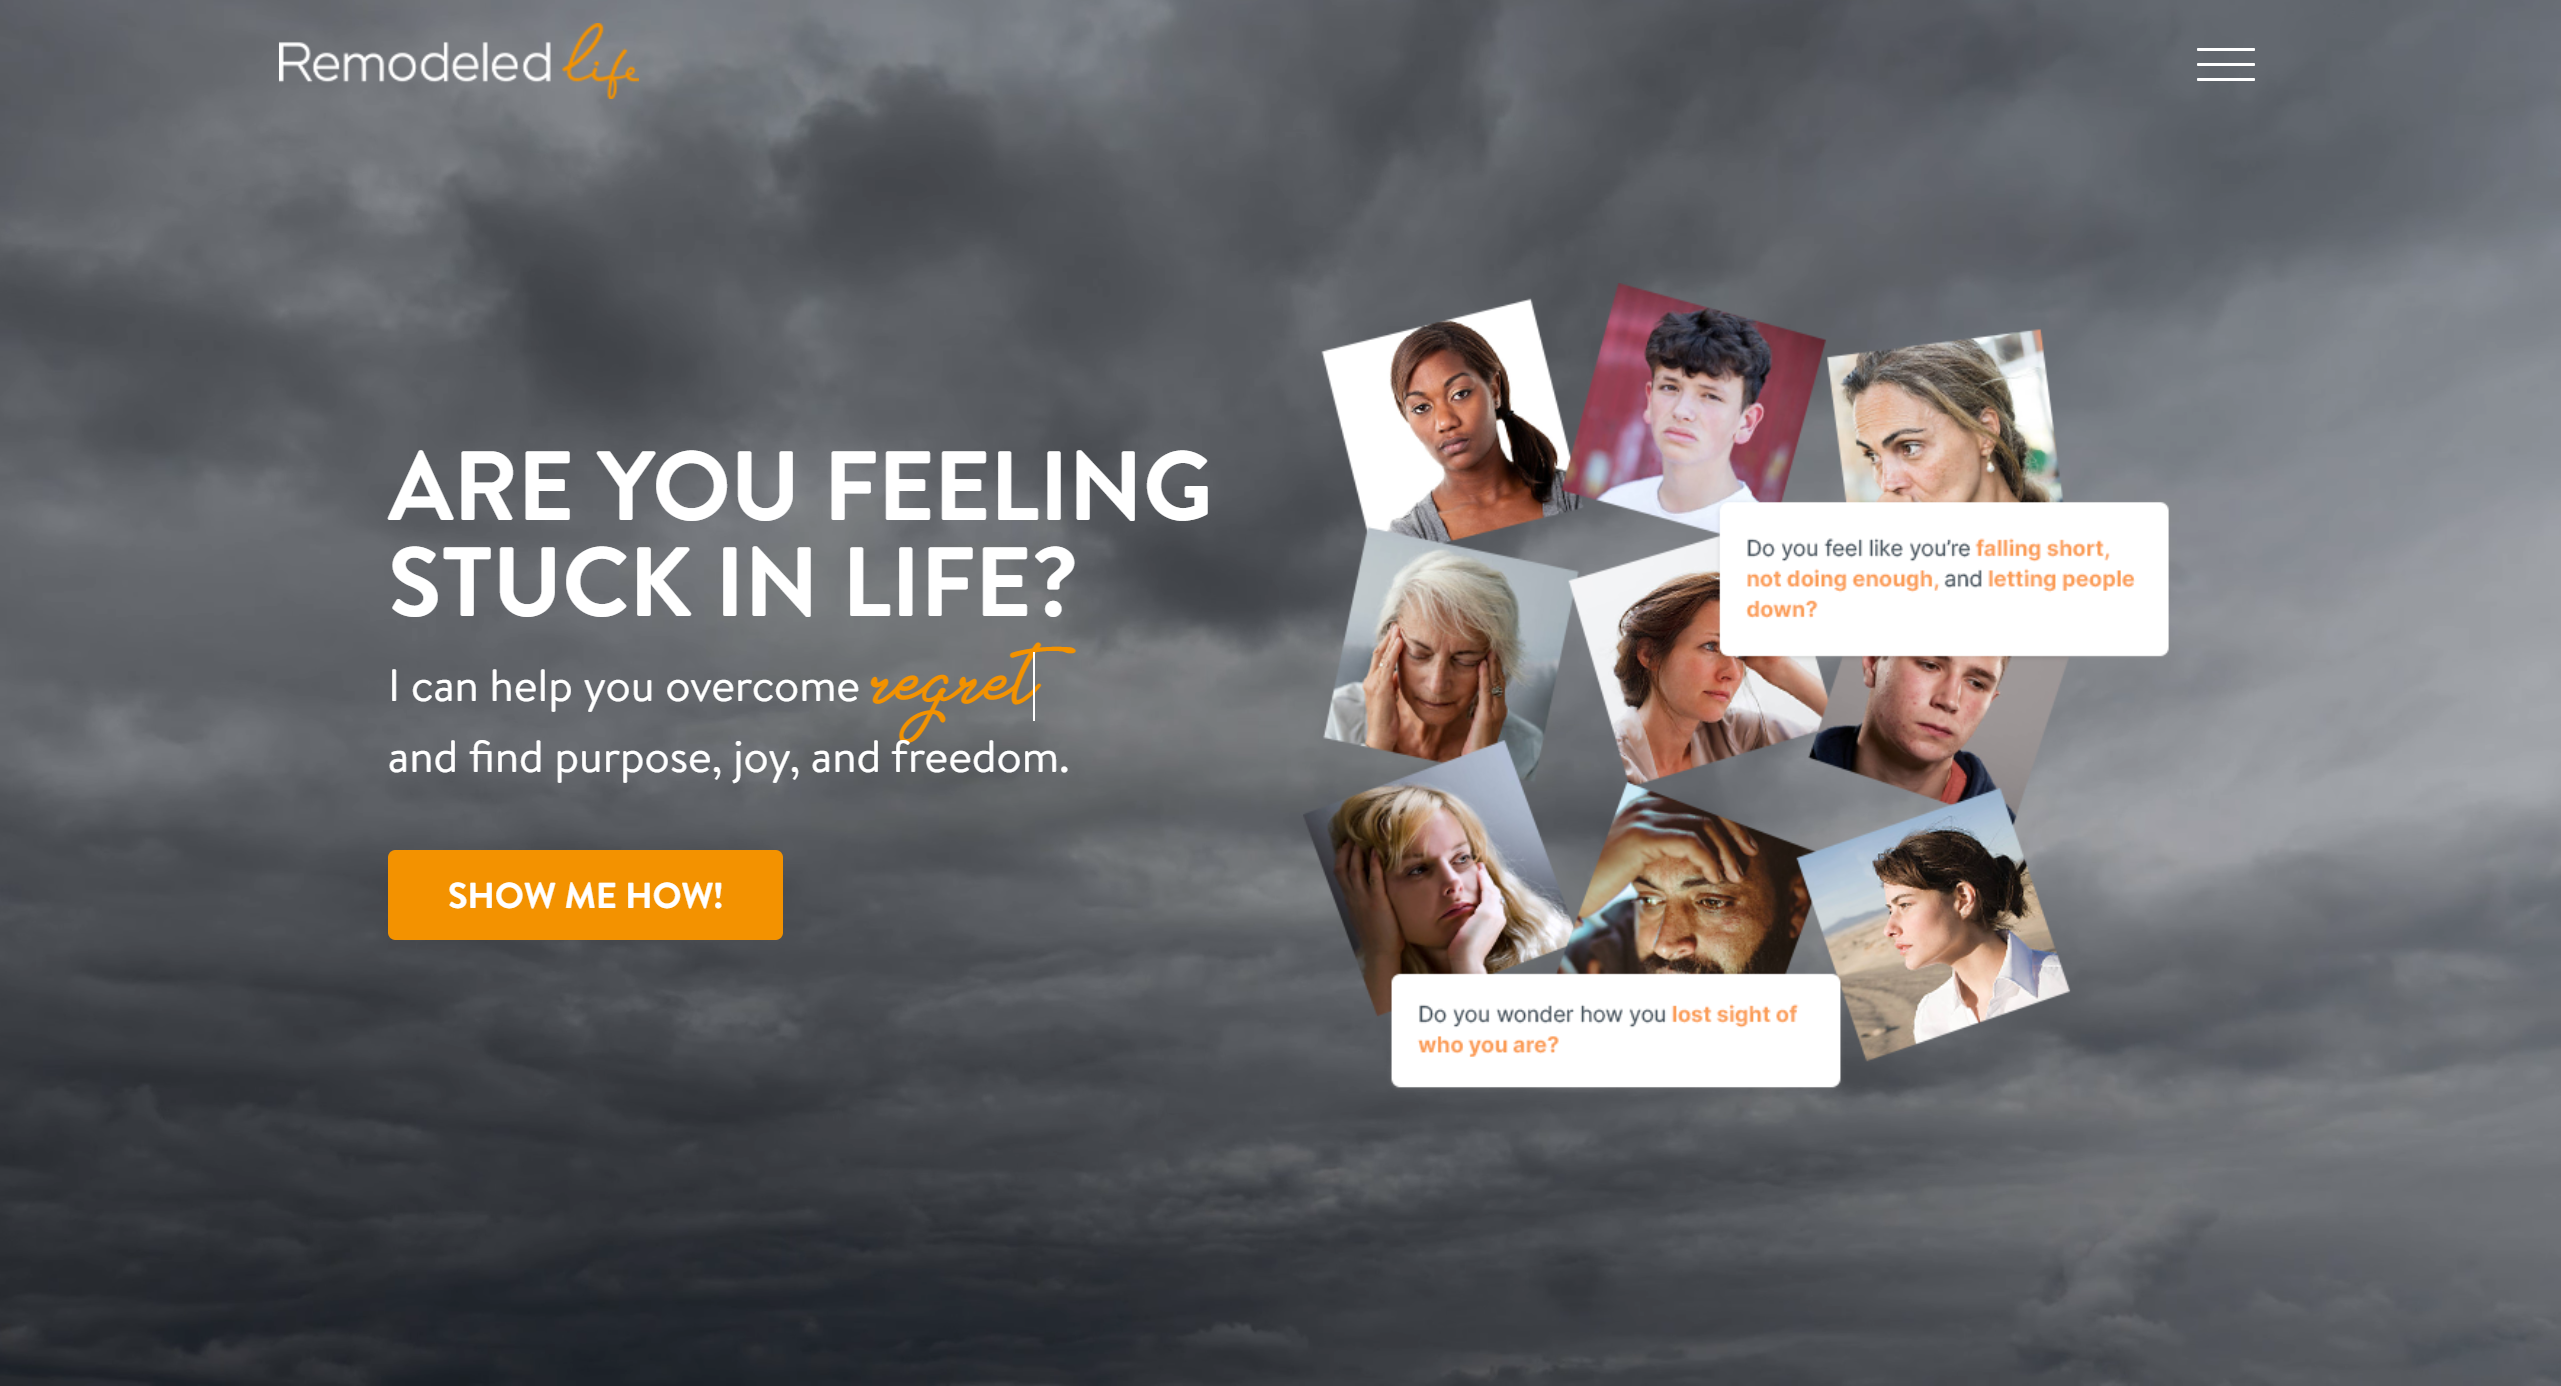 Dark, foreboding landing page. People hurting, dealing with regret